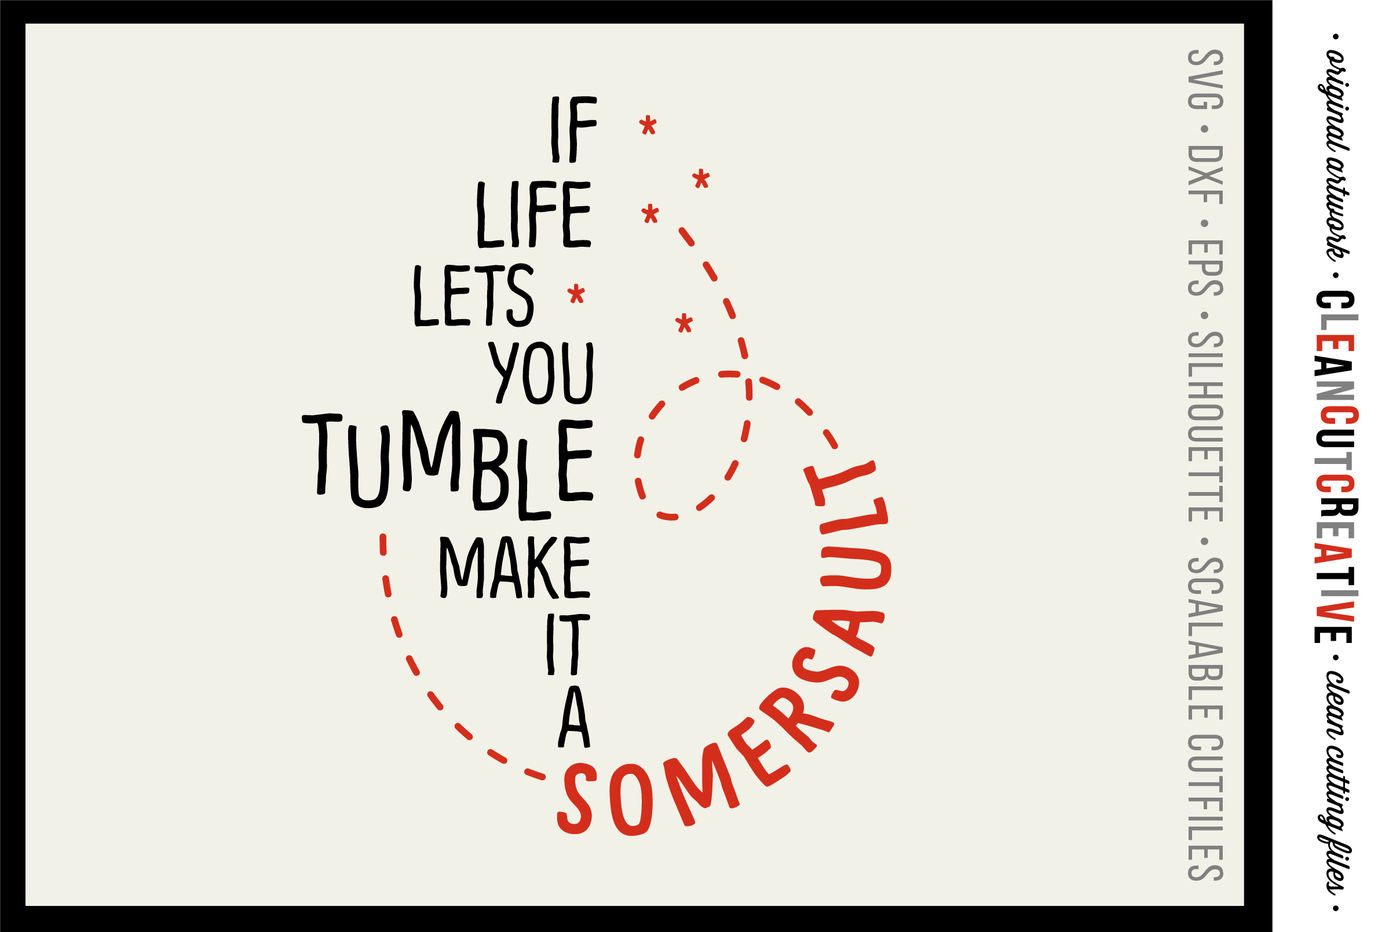 Funny Uplifting Somersault Quote Svg Dxf Eps Png Cricut